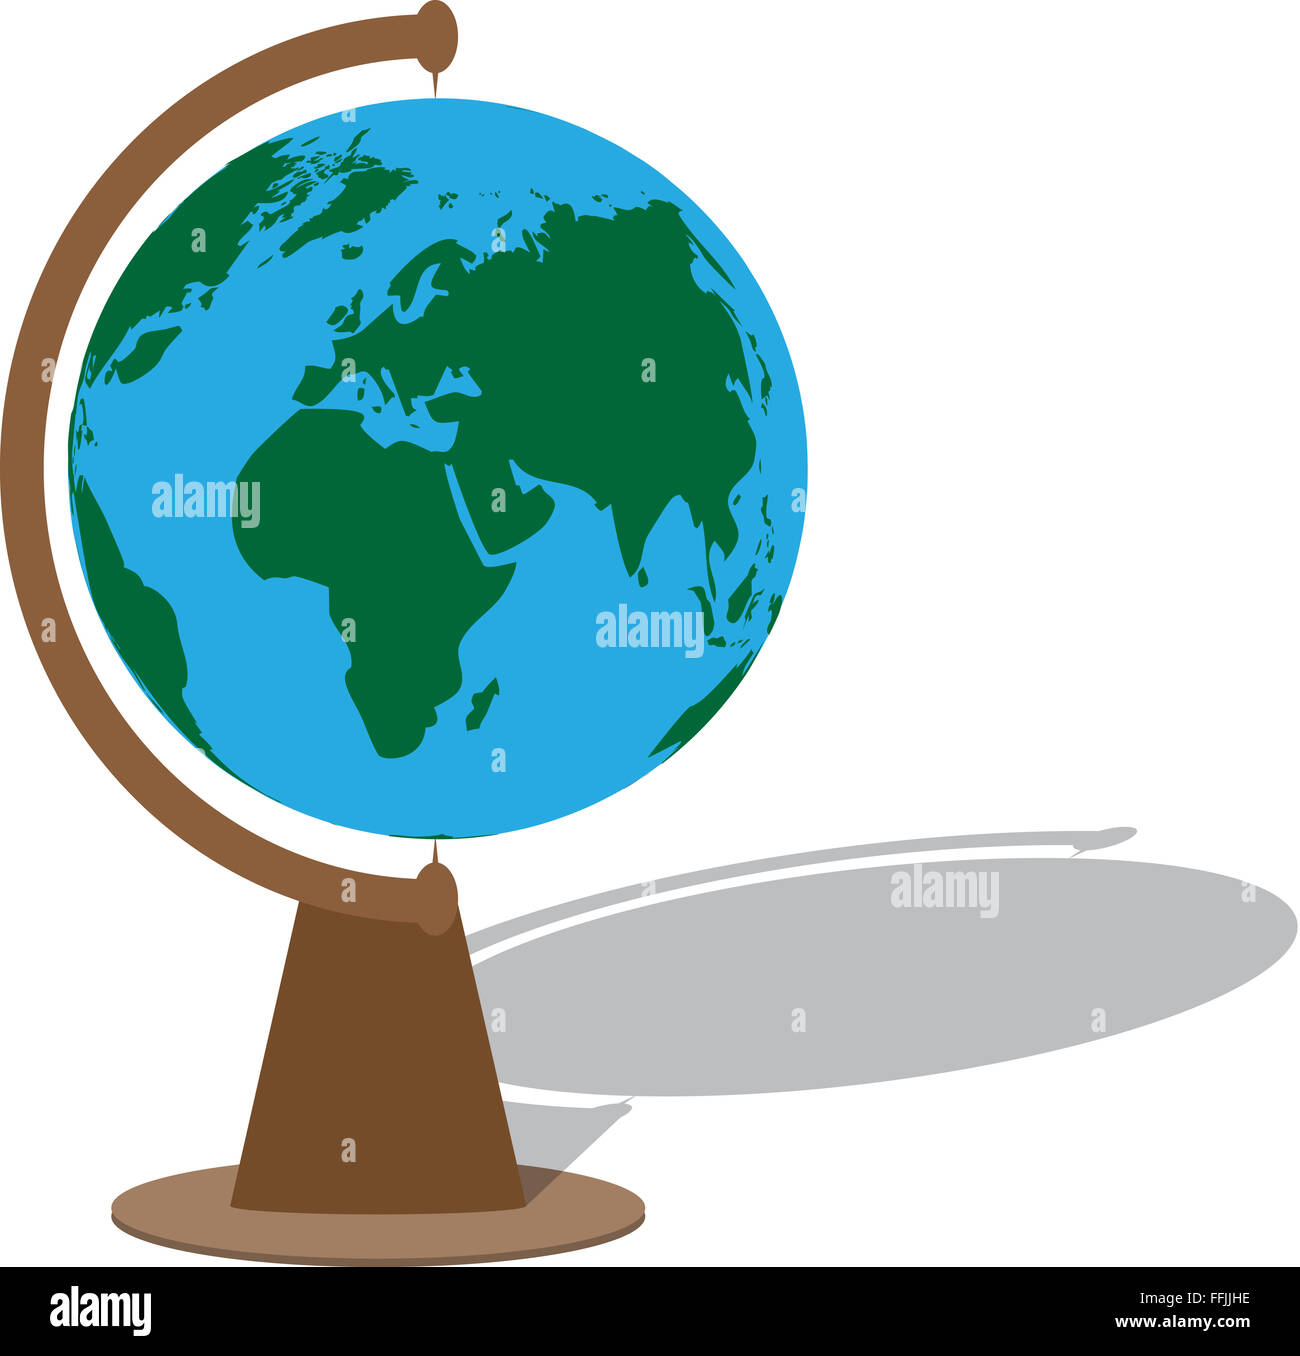 Globe with shadow globe planet sphere ball world earth map stock globe planet sphere ball world earth map geography vector abstract flat design illustration gumiabroncs Gallery